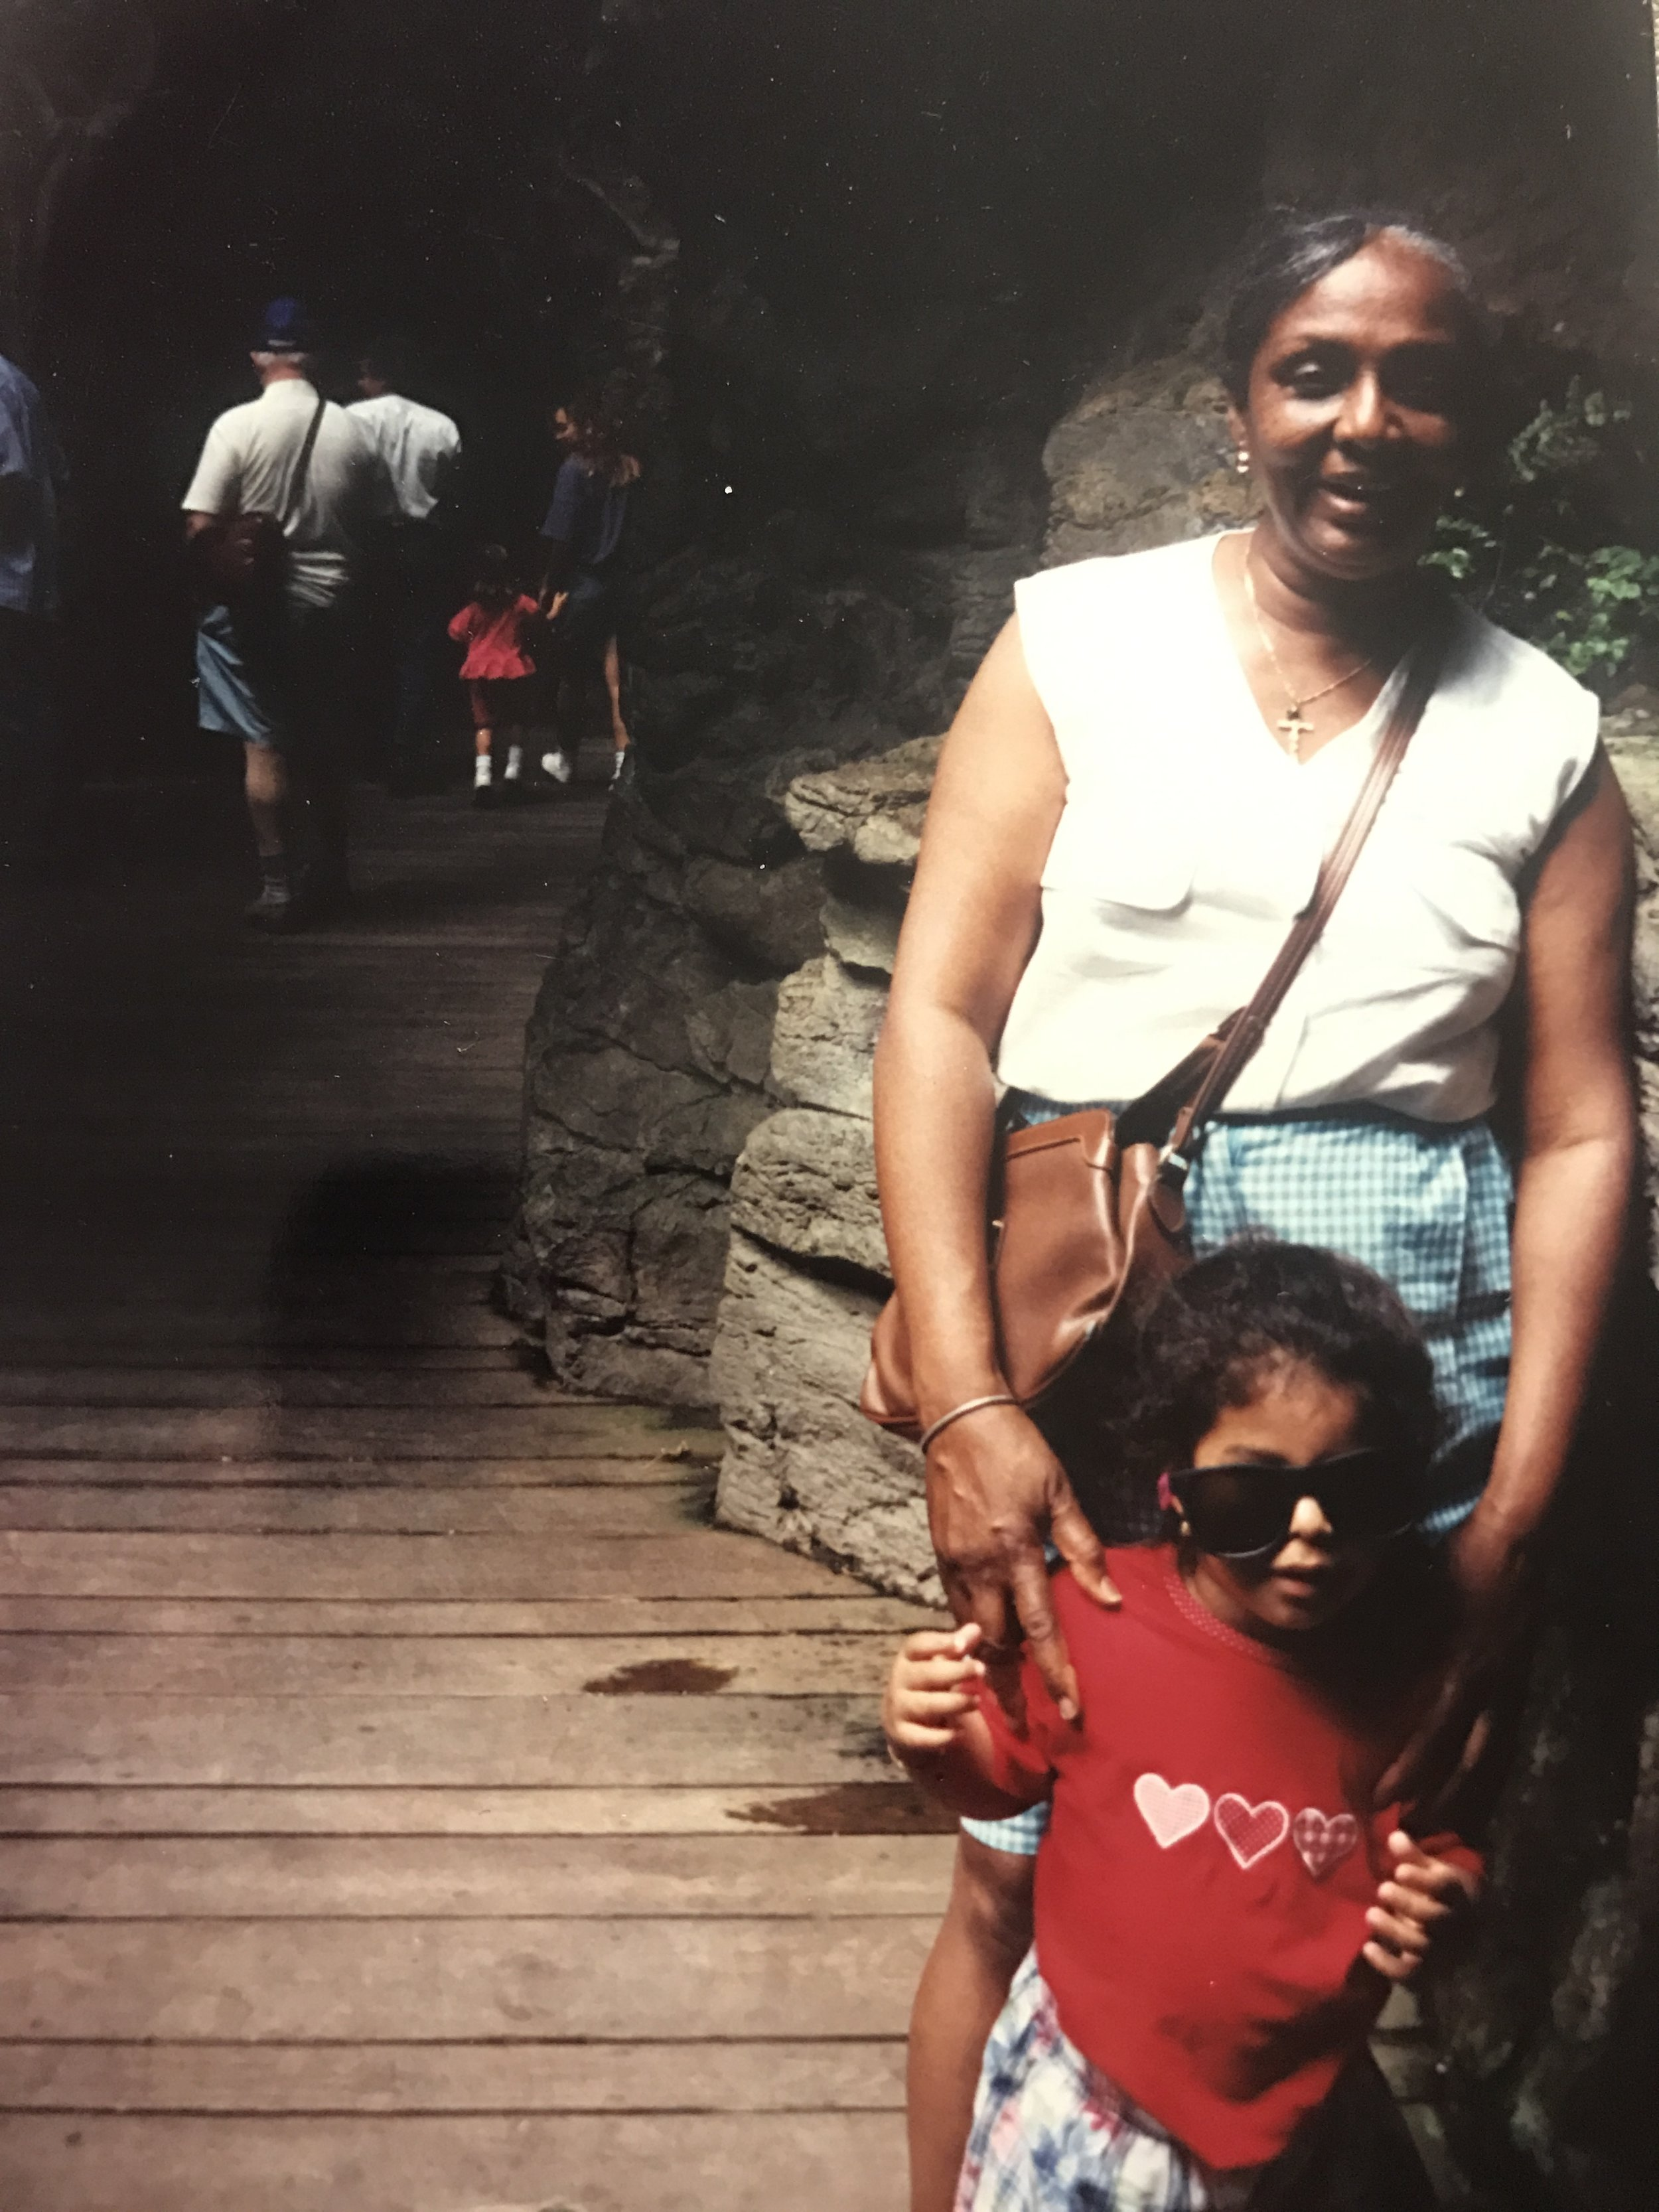 My grandmother and I at the Bronx Zoo.